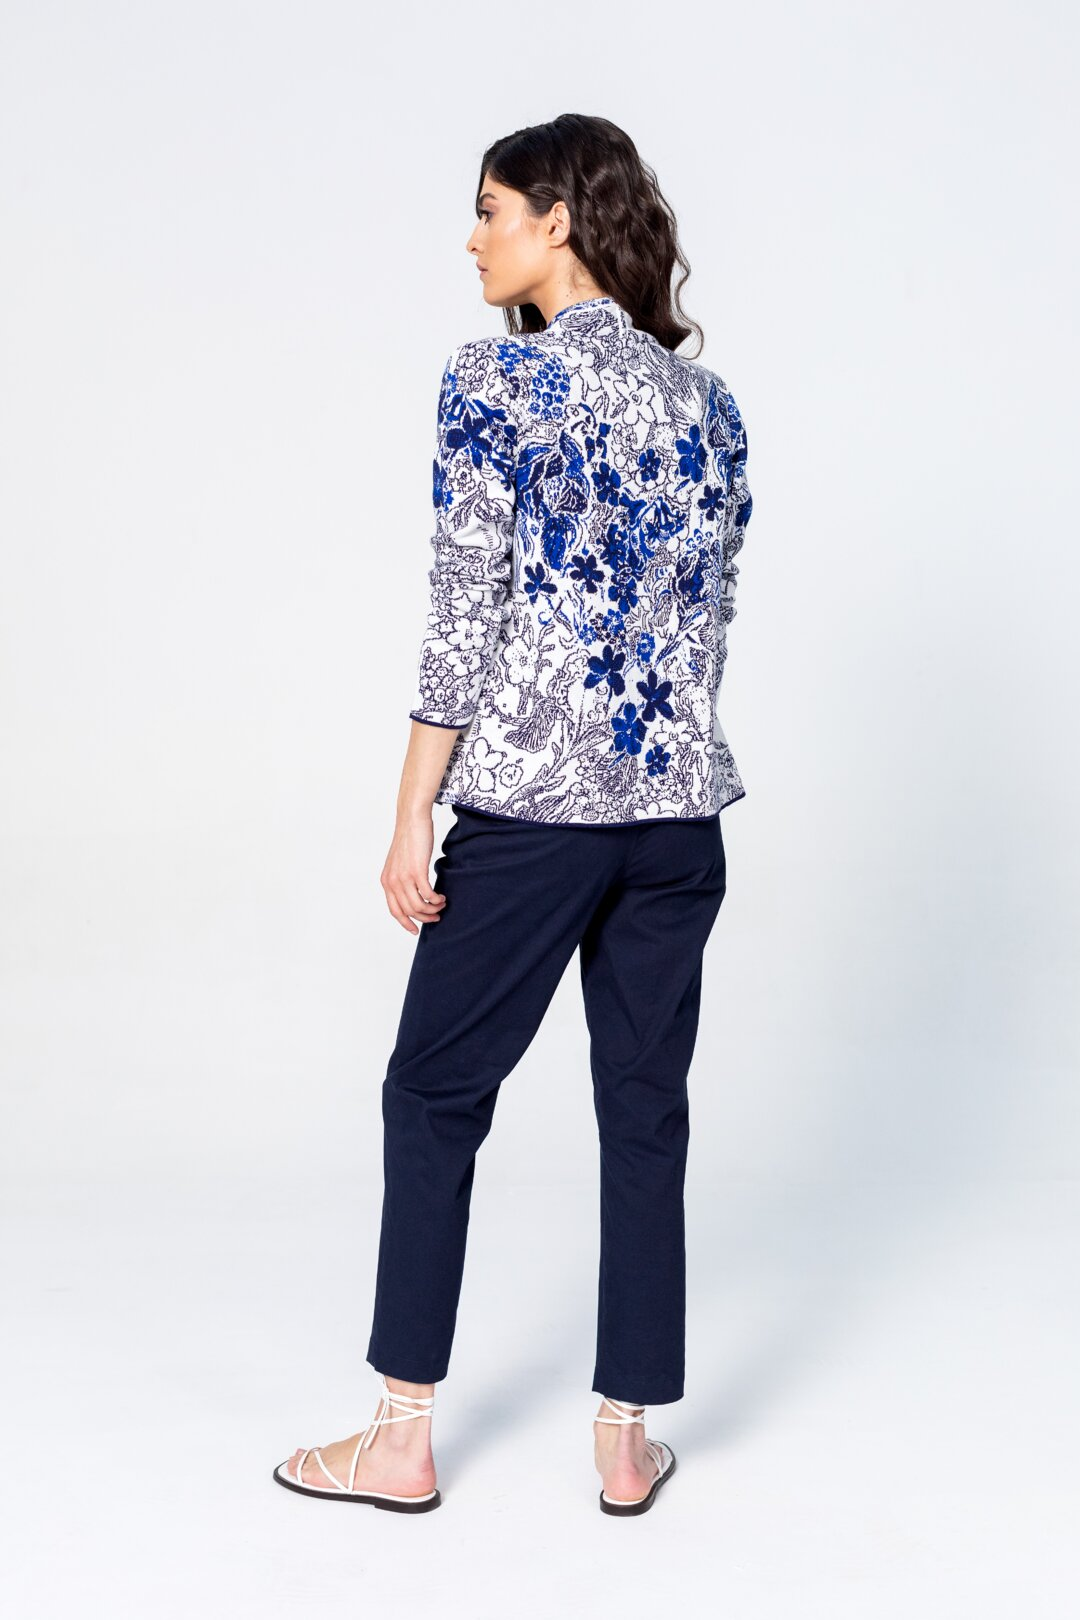 outfit-20121436d